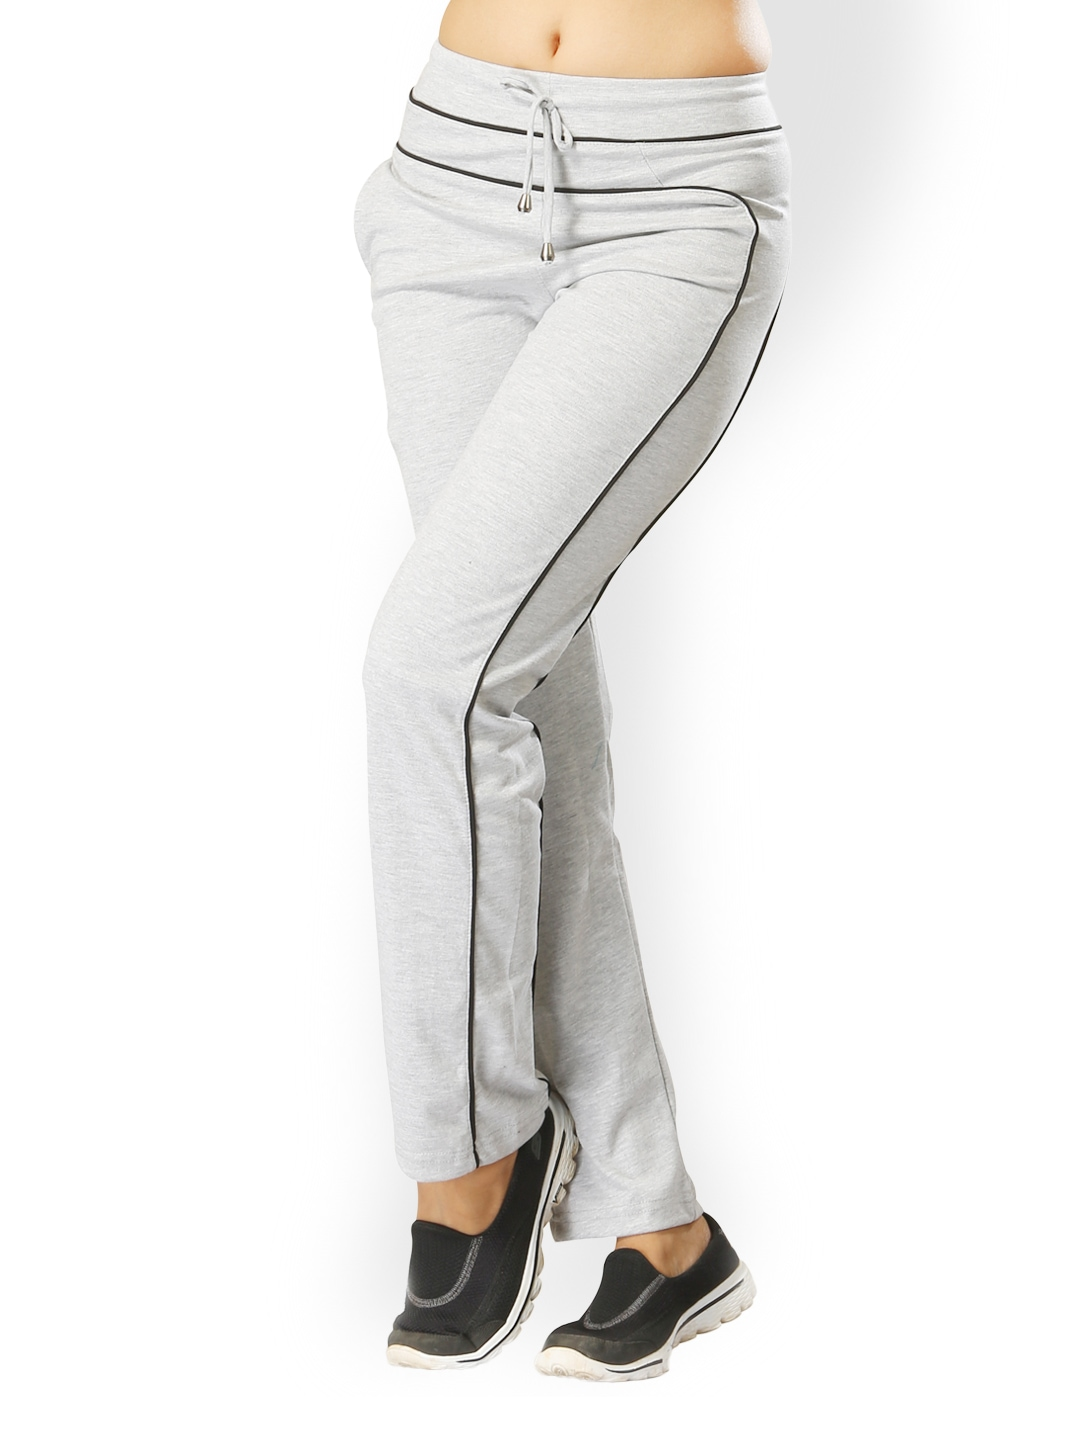 Original Buy Towngirl Grey Track Pants For Women Online In India  74279538